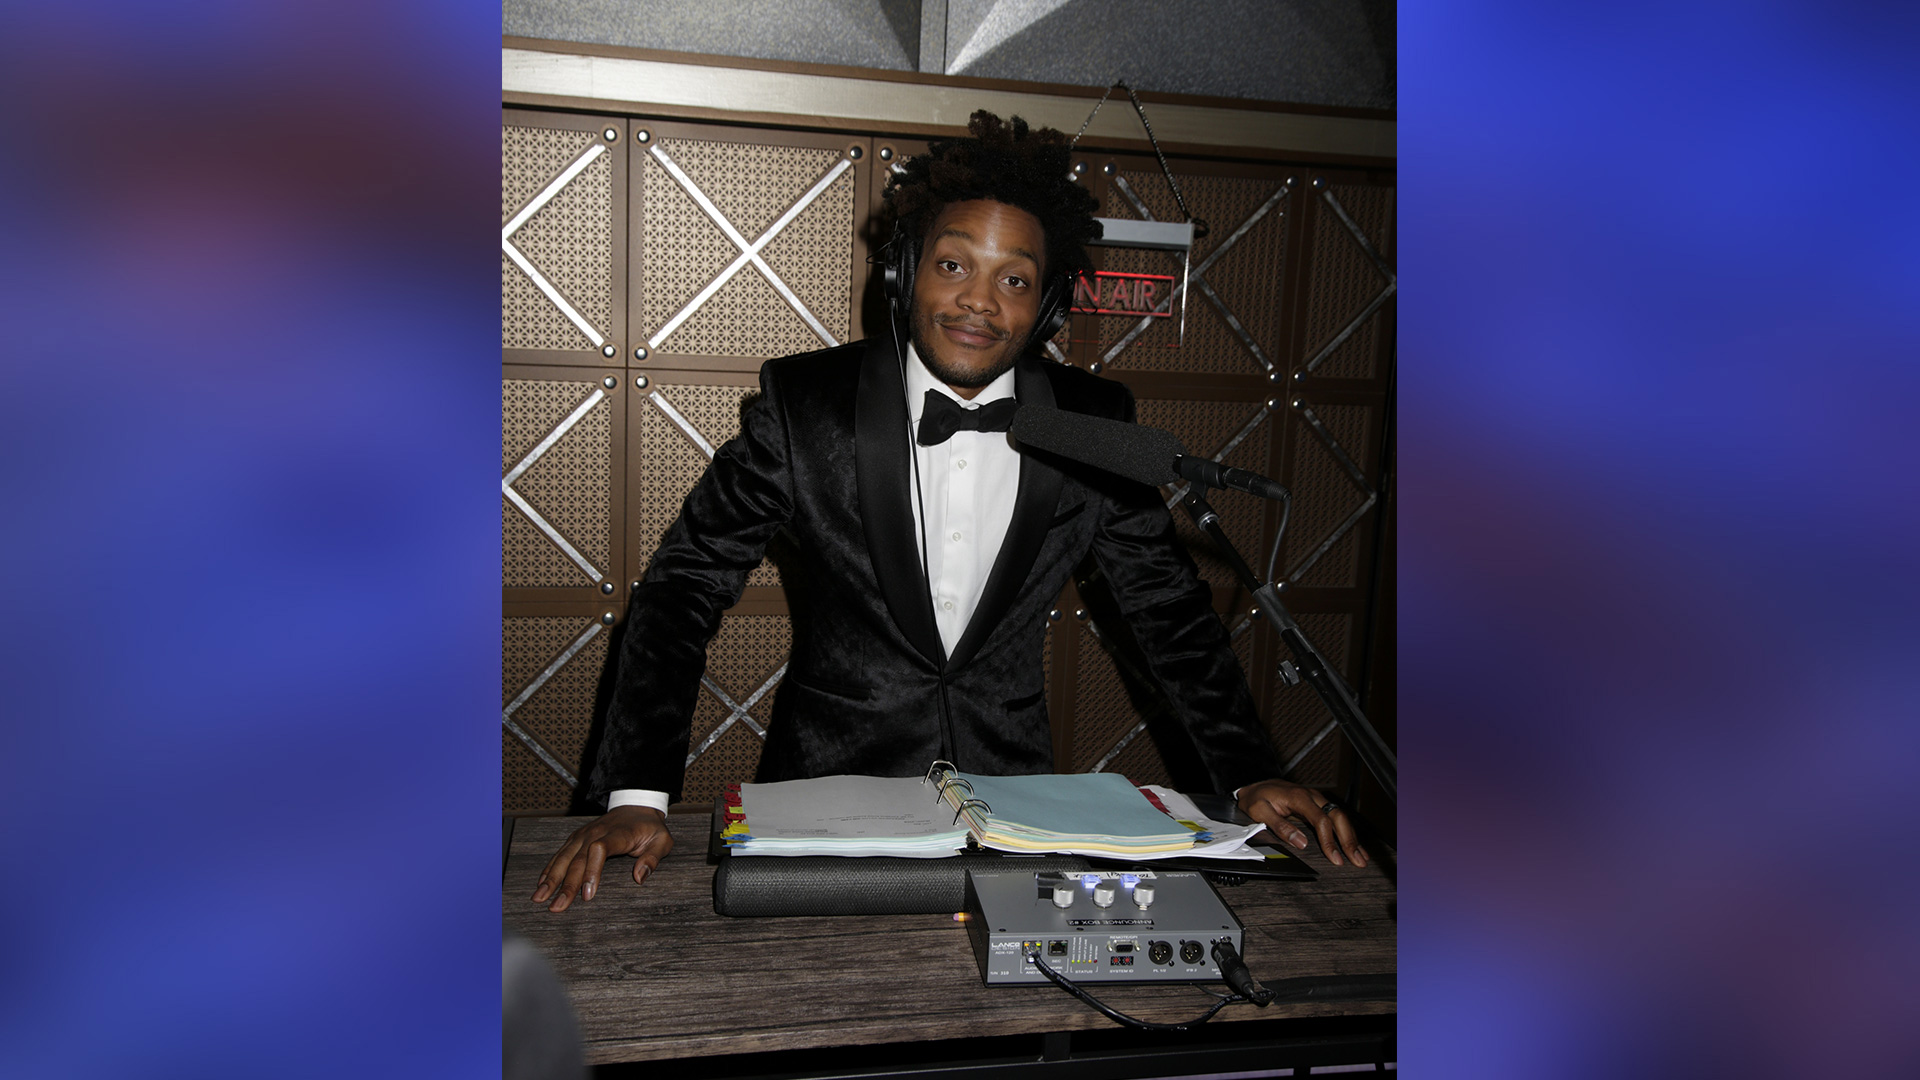 Superior Donuts star Jermaine Fowler shares a cool smirk from his announcer's booth.